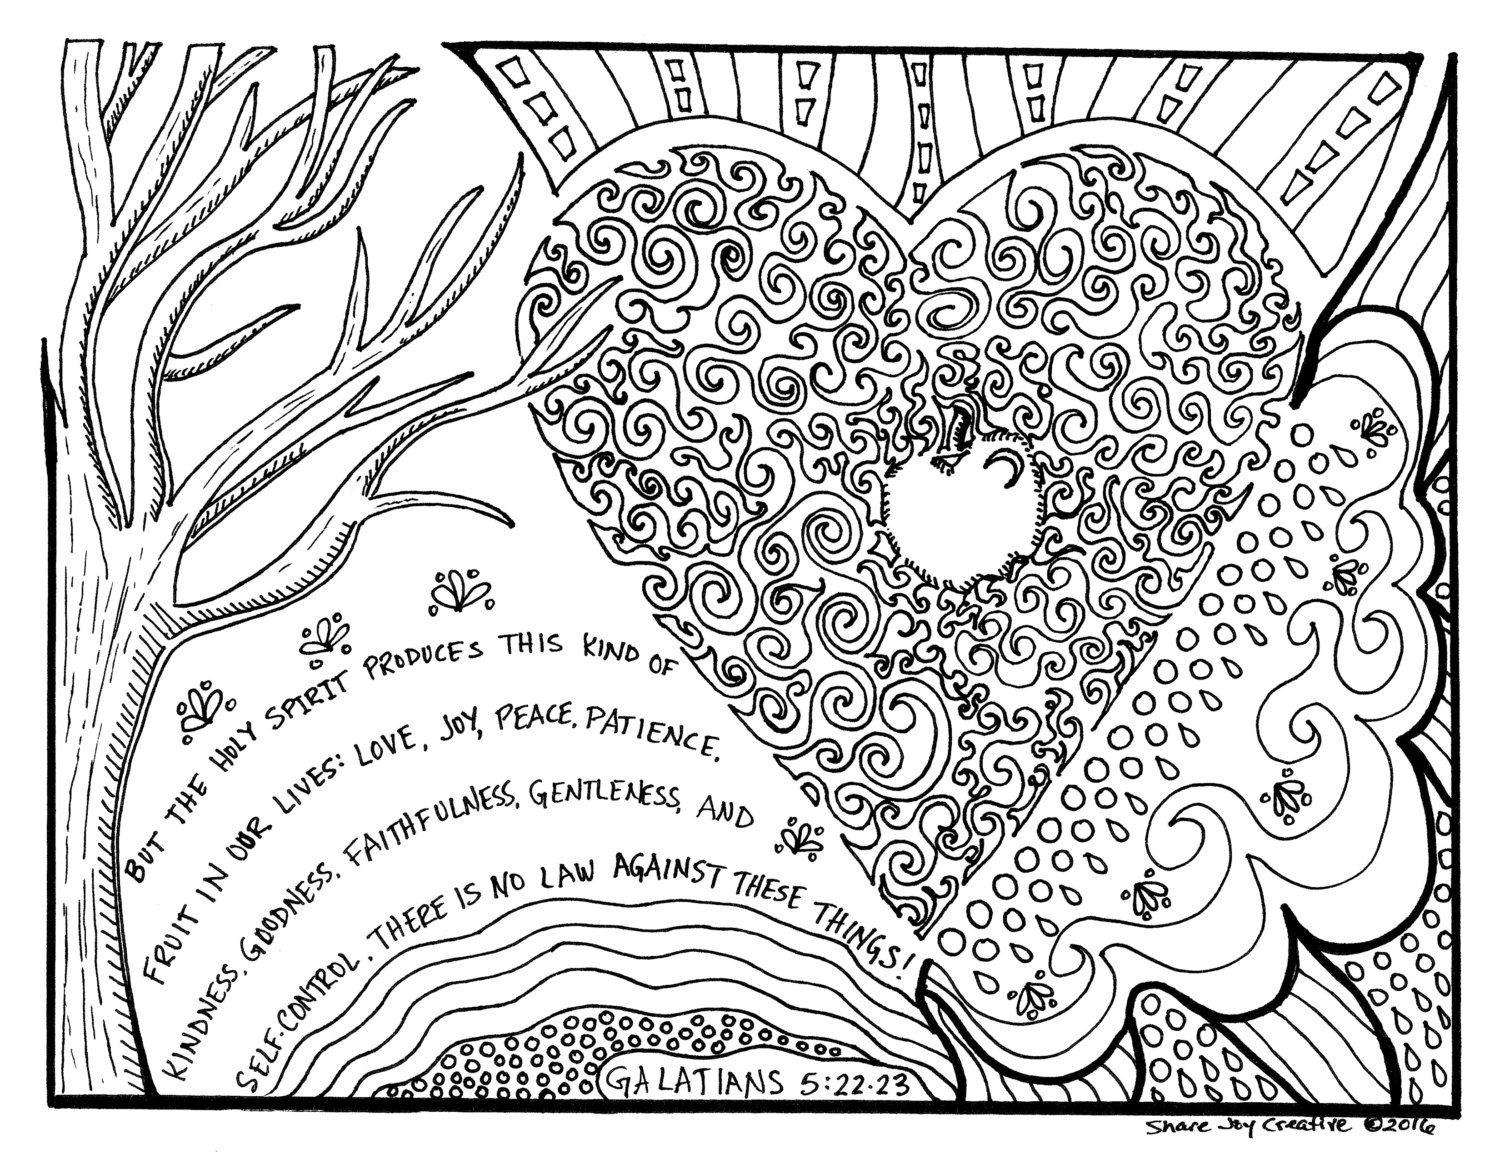 The Fruit Of The Holy Spirit Coloring Page Printable Etsy In 2021 Coloring Pages Coloring Pages For Kids Coloring Pictures